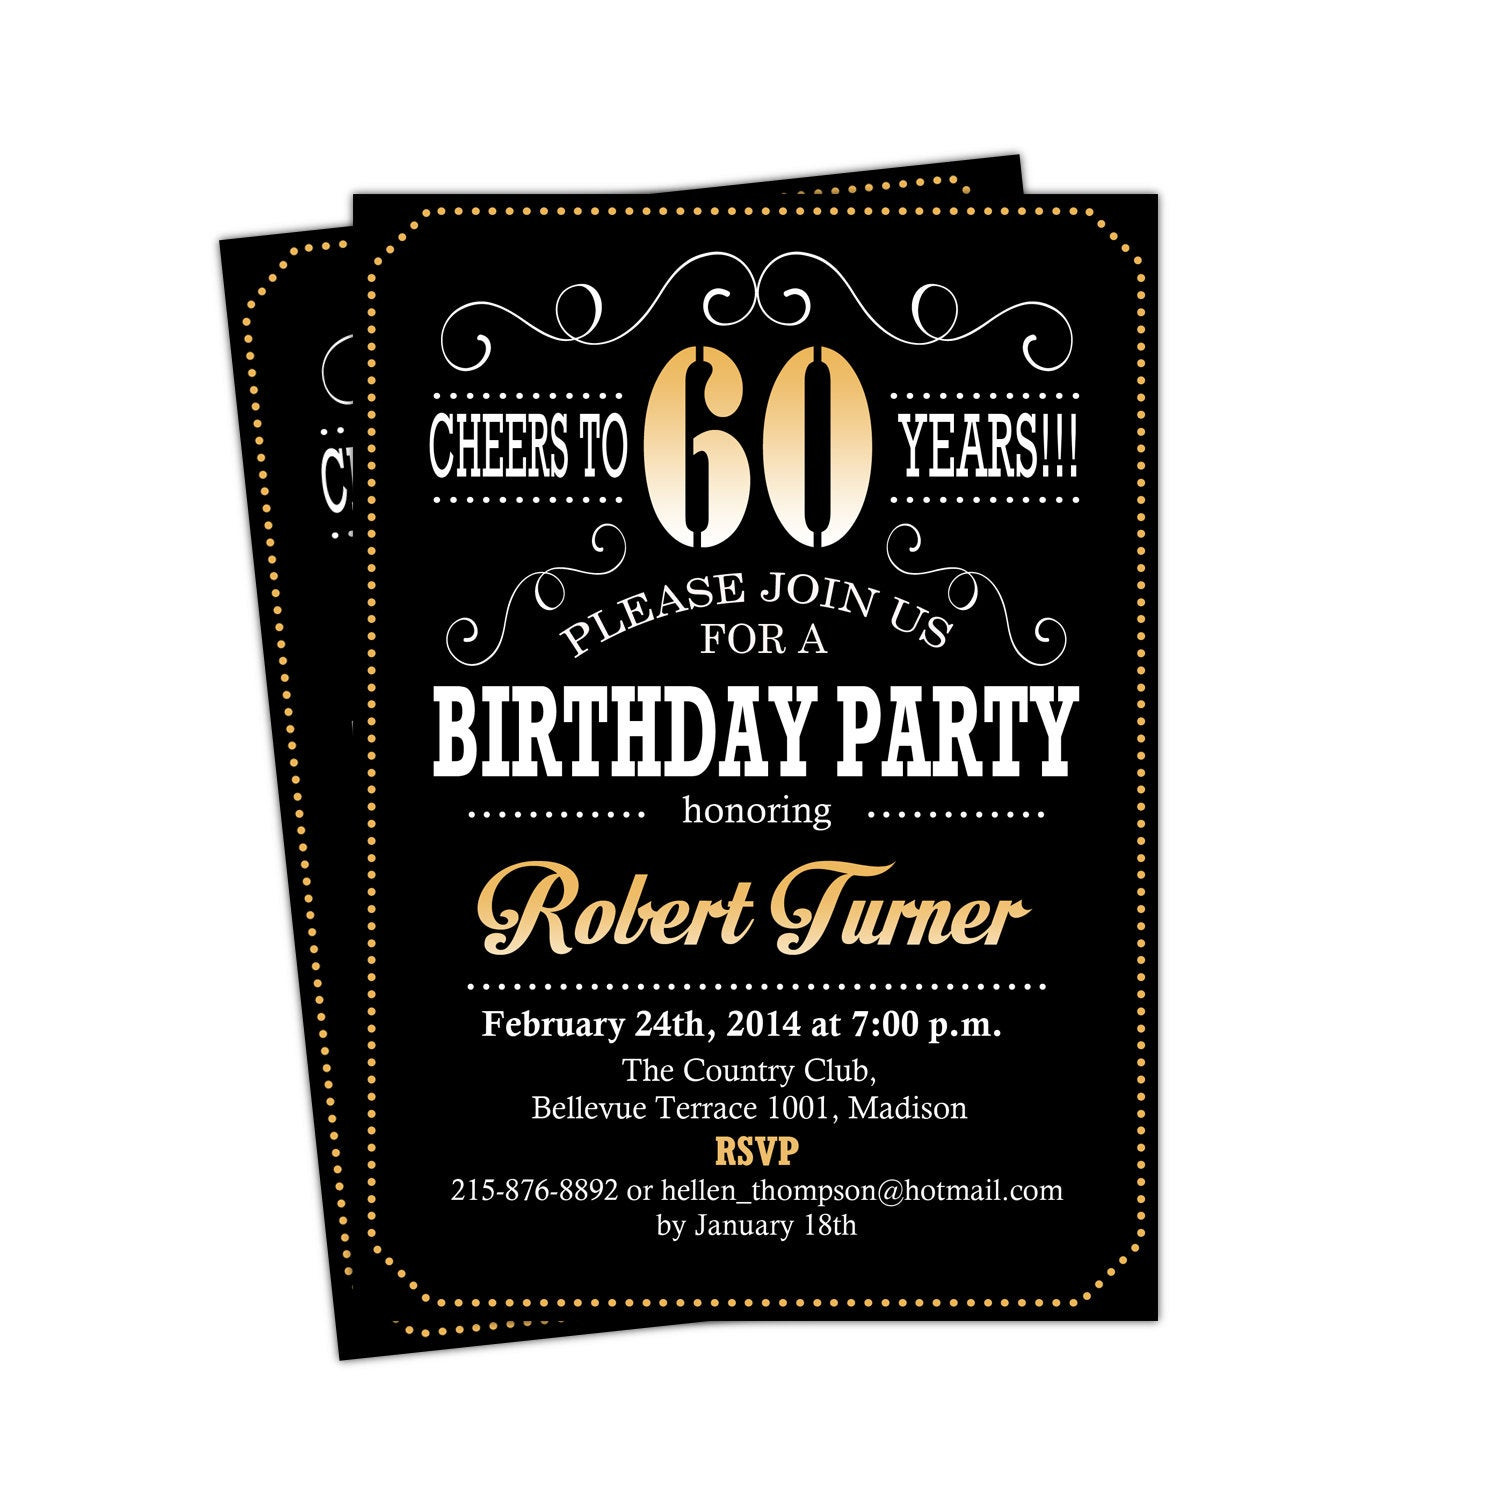 Best ideas about 60 Birthday Invitations . Save or Pin 60th Birthday Invitation Cheers To 60 Years Any Age Gold Now.